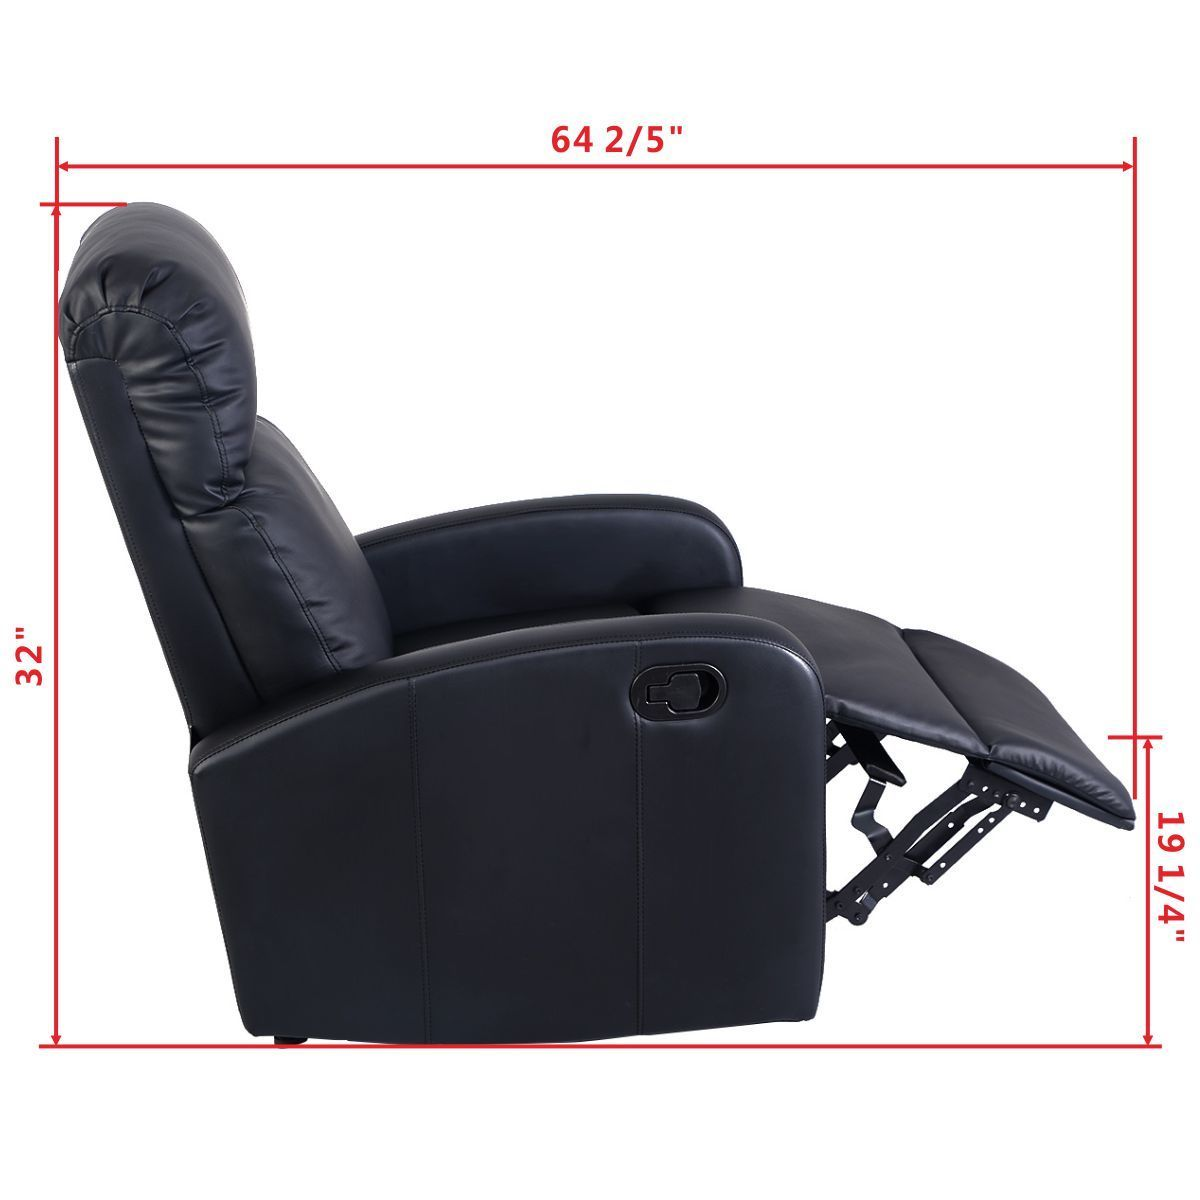 Divani Recliner Manuale Us 159 99 Giantex Manual Recliner Sofa Chair Black Home Living Room Lounger Leather Sofa Seat Theater Leisure Recliner Single Sofa Hw51431 In Living